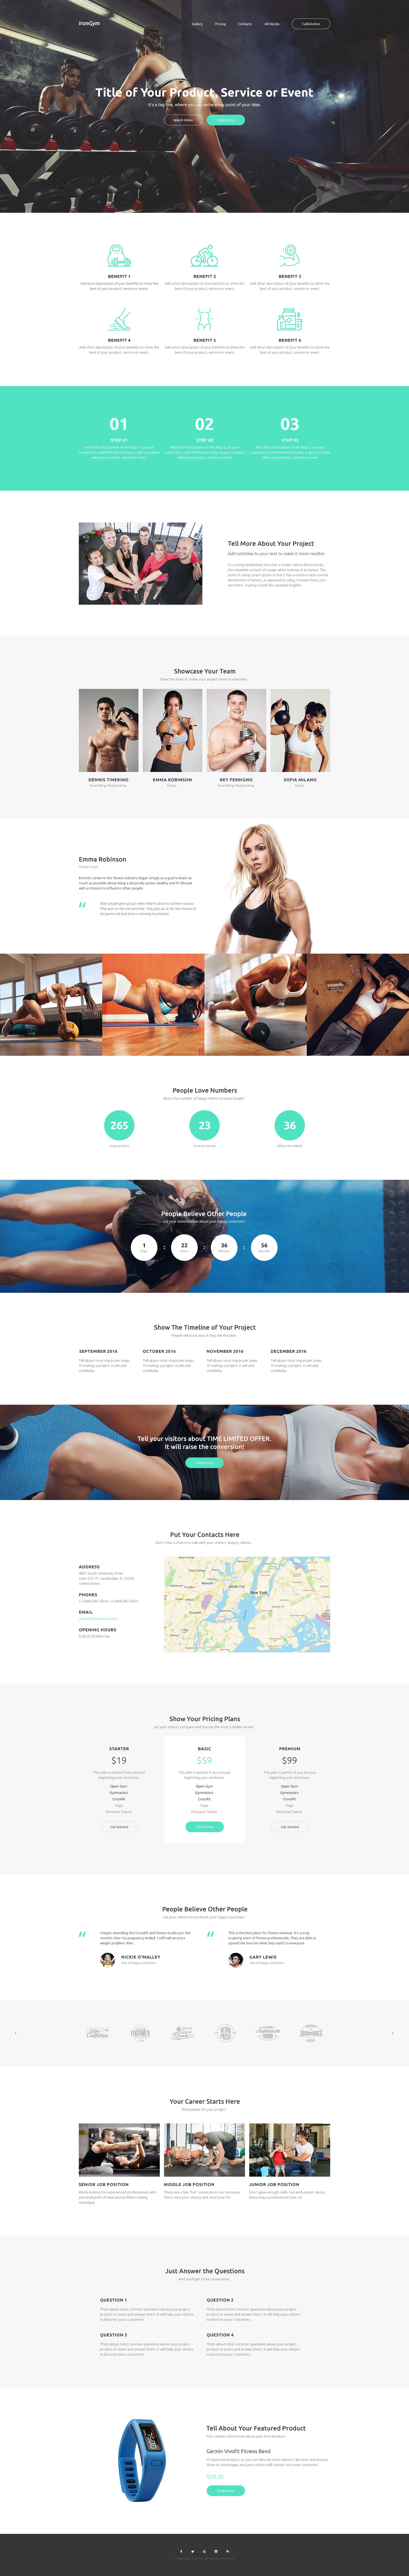 IronGym Landing Page HTML Screenshot 1